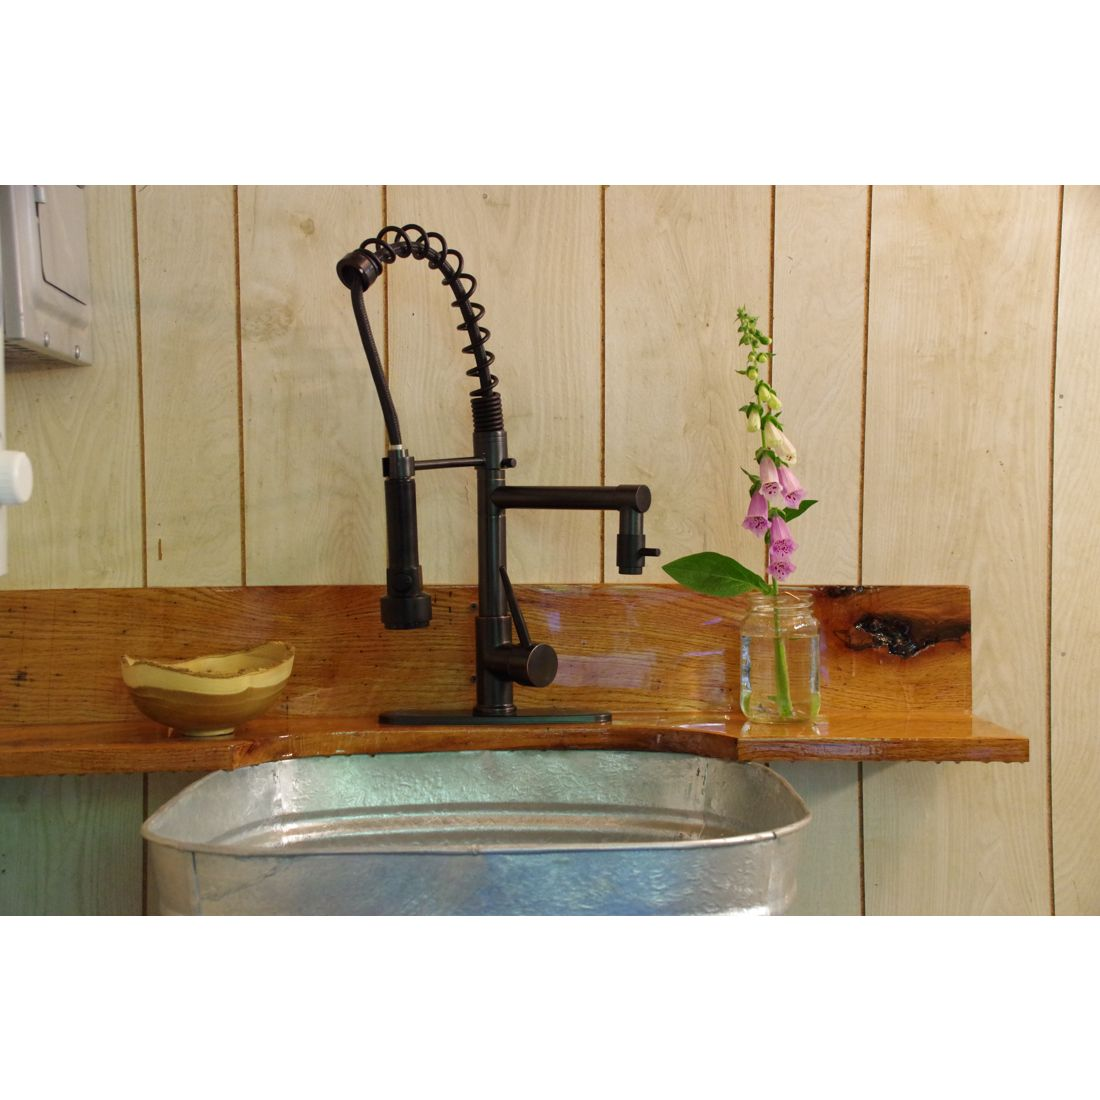 spring pull down sprayer kitchen faucet small